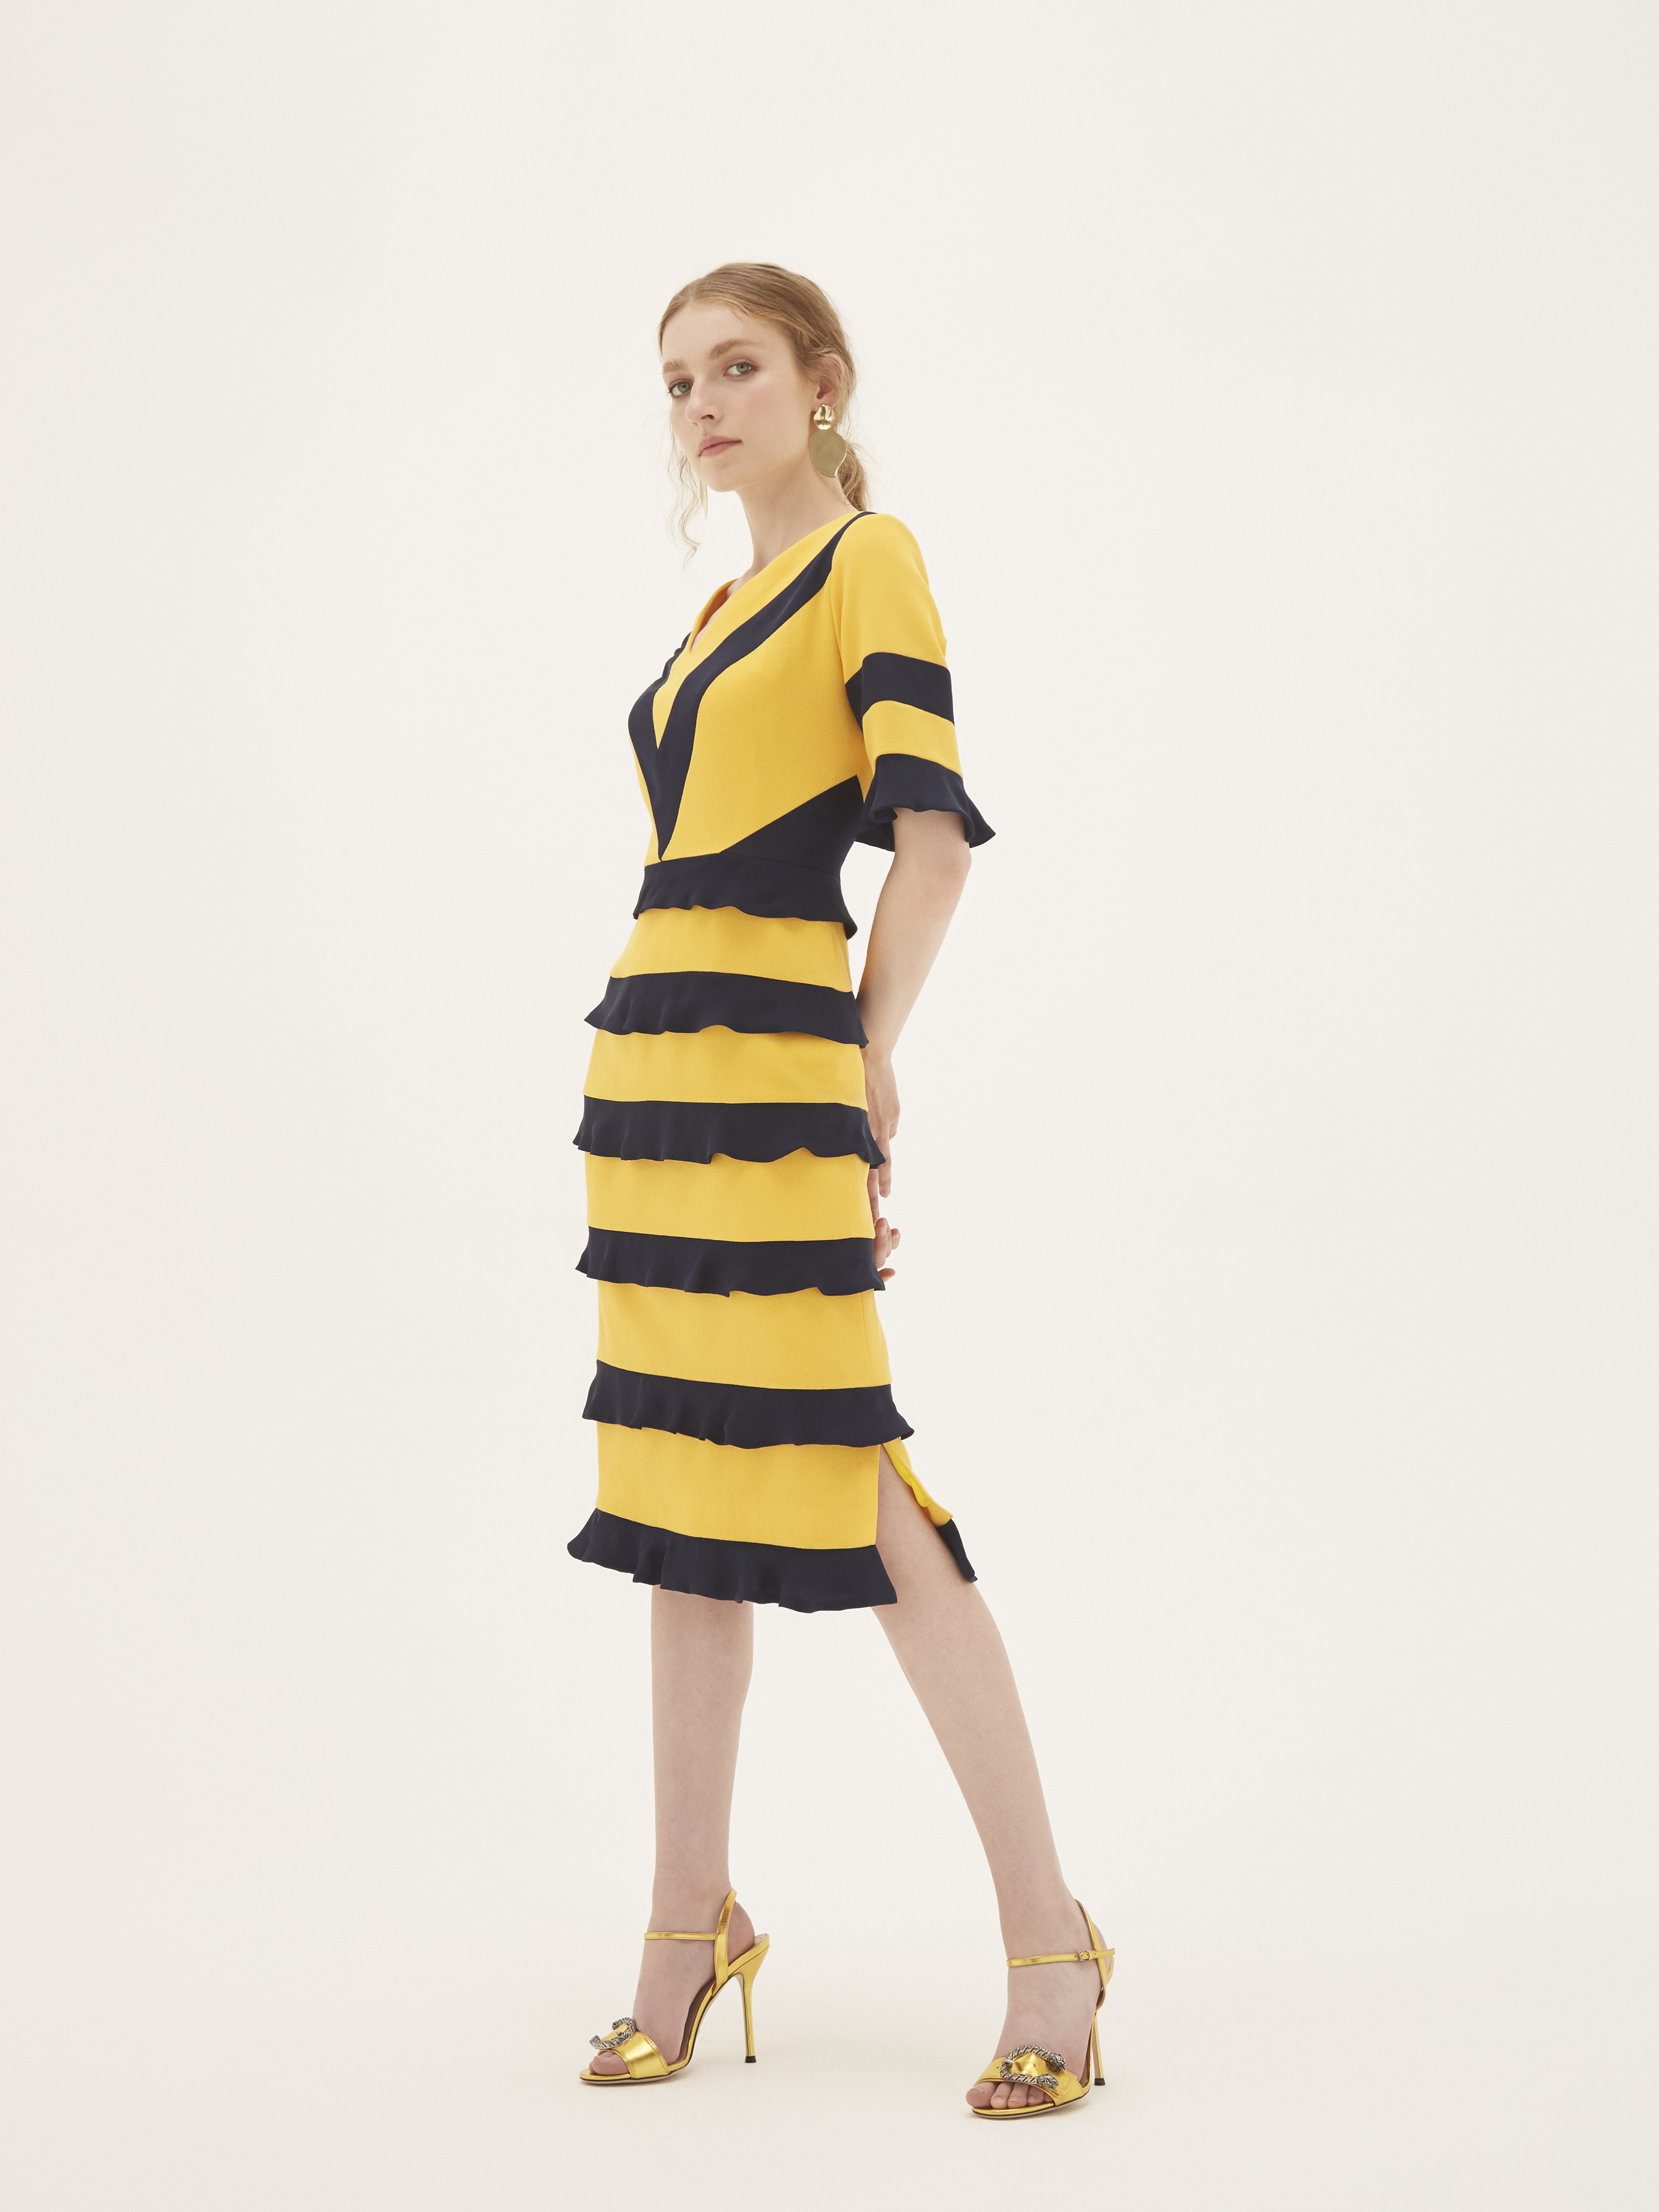 Queen Bee Dress by Bozena Jankowska on curated-crowd.com